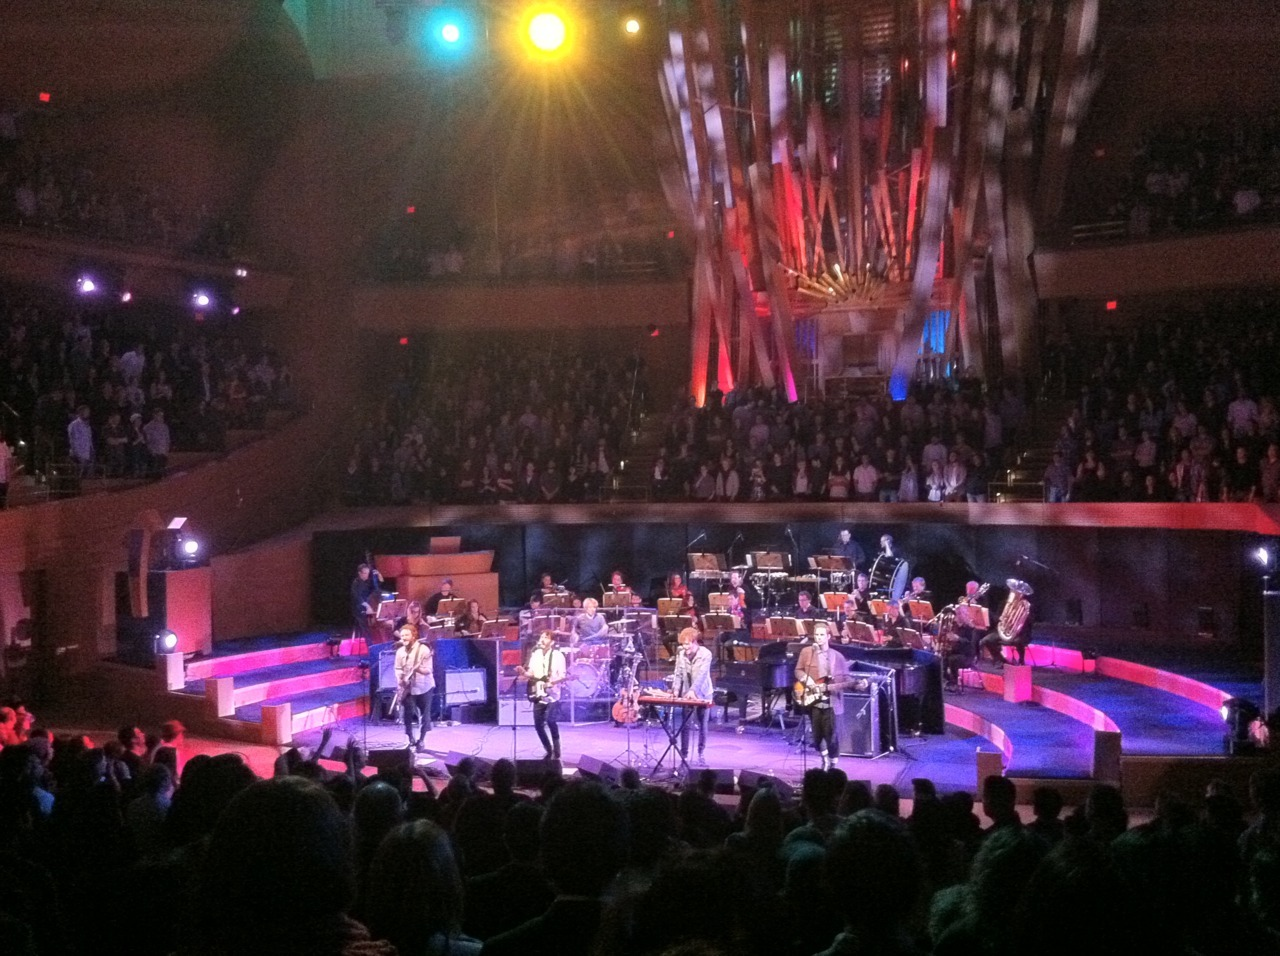 Local Natives at Walt Disney Concert Hall featuring a 23-piece orchestra Tonight was fantastic. I'd never been inside the Frank Gehry-designed building before tonight. The concert hall was much smaller and intimate than I anticipated, creating a wonderful atmosphere for this one-off performance. They started out backed by a four-piece string quartet playing Wide Eyes, Warning Sign (Talking Heads cover), Cubism Dream, Cards & Quarters, Careful (Television cover), Camera Talk and Sticky Thread. After an intermission they returned with the full 23-piece orchestra for Stranger Things, Shape Shifter, World News, Airplanes, Who Knows Who Cares, and encored with Sun Hands.* I'm so glad that guitarist/singer Taylor Rice got to achieve his dream of playing WDCH, just 2.5 years after visiting the space on an architecture class trip. *set list is from memory, there is likely a mistake or two